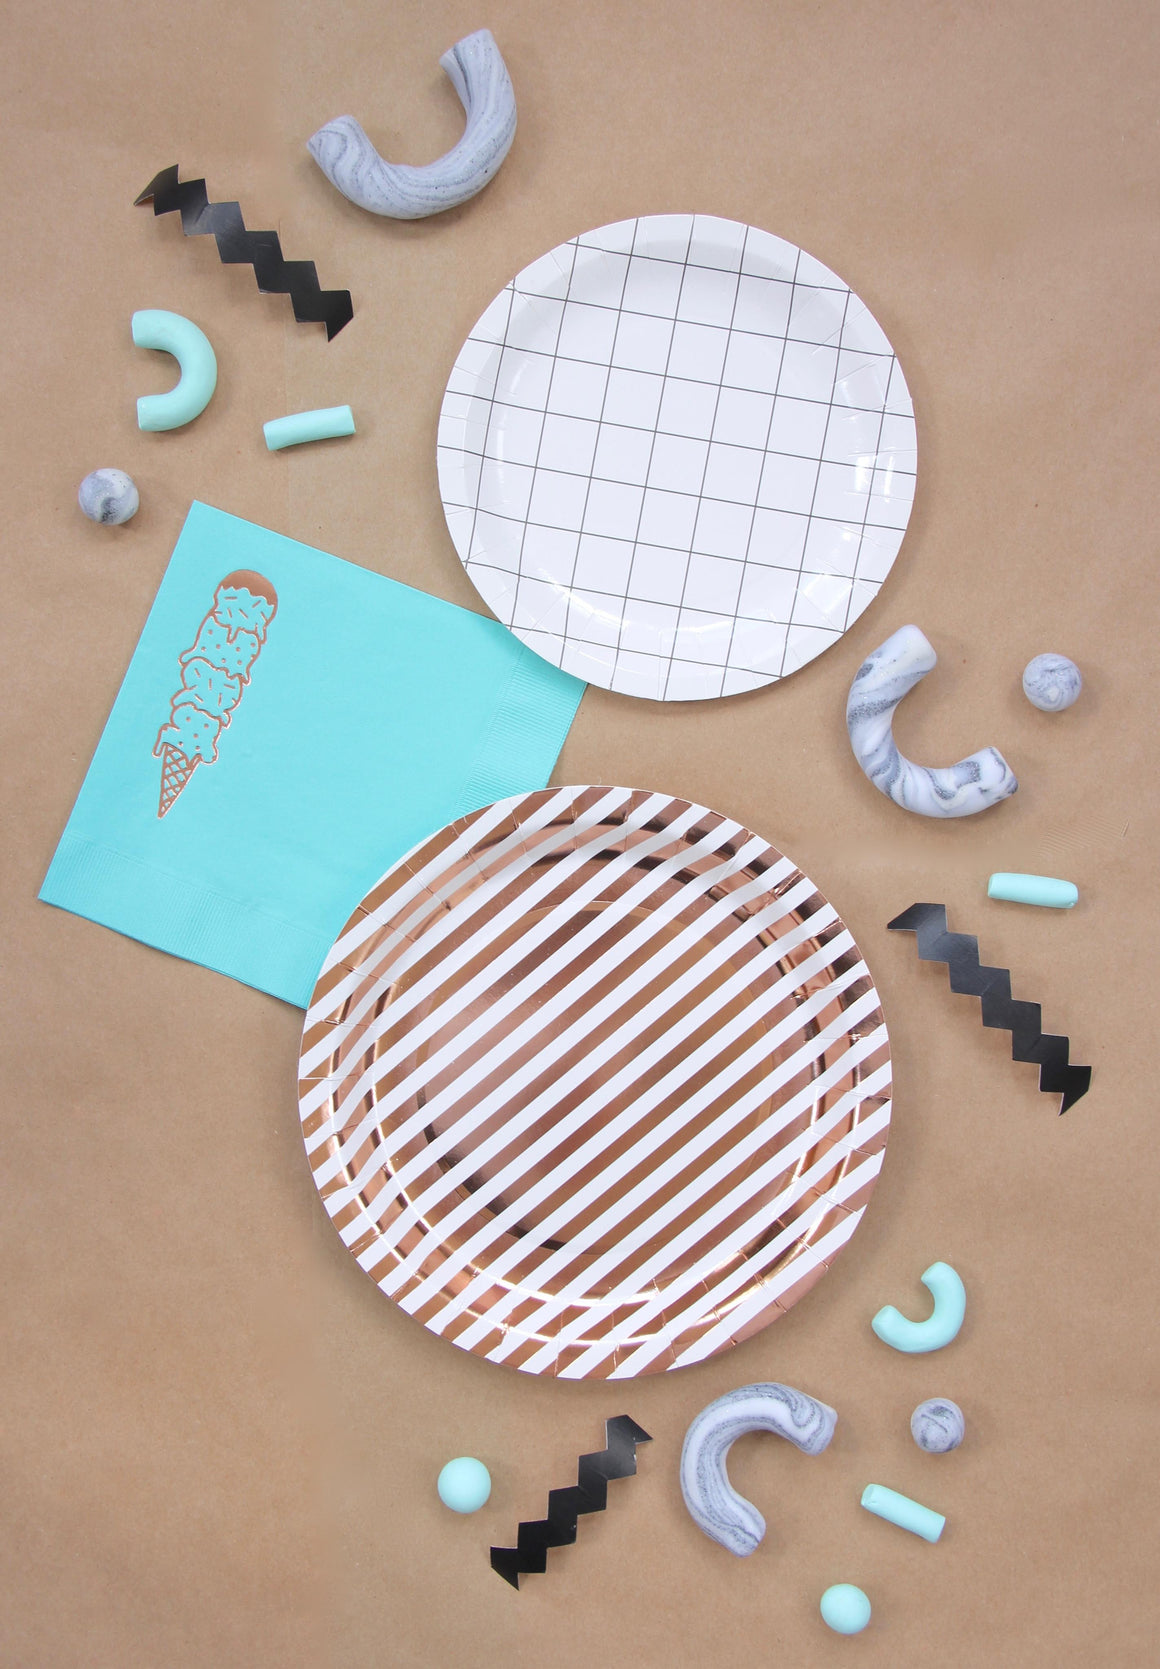 BASH COPPER LUXE PLATE, PLATES, BASH - Bon + Co. Party Studio